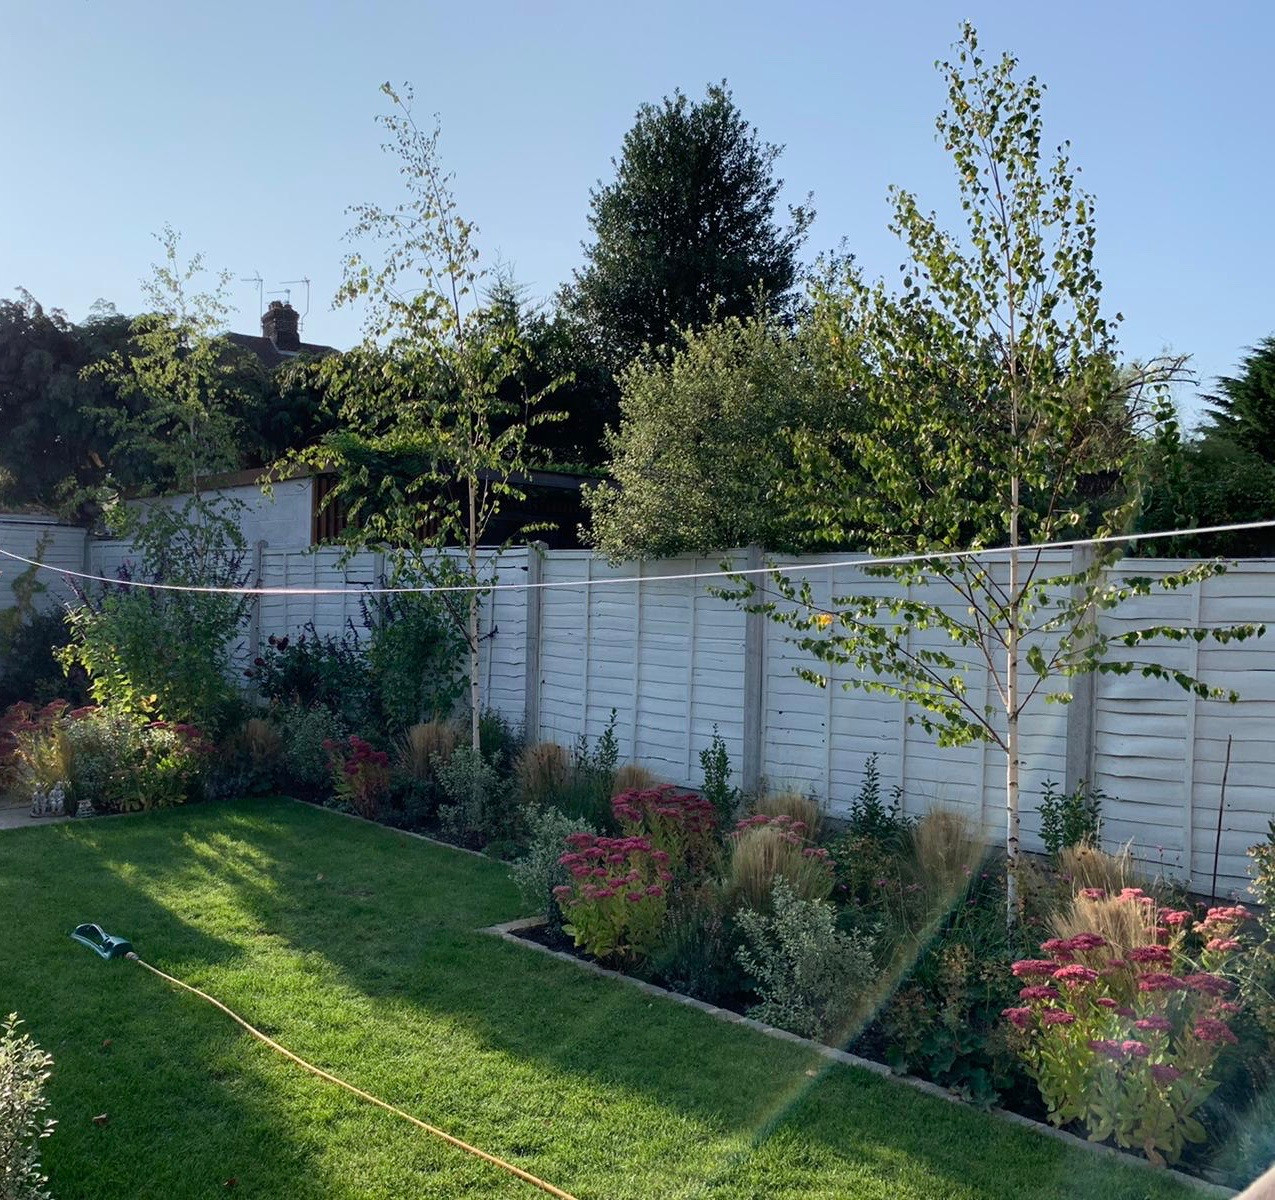 Family garden in Chingford